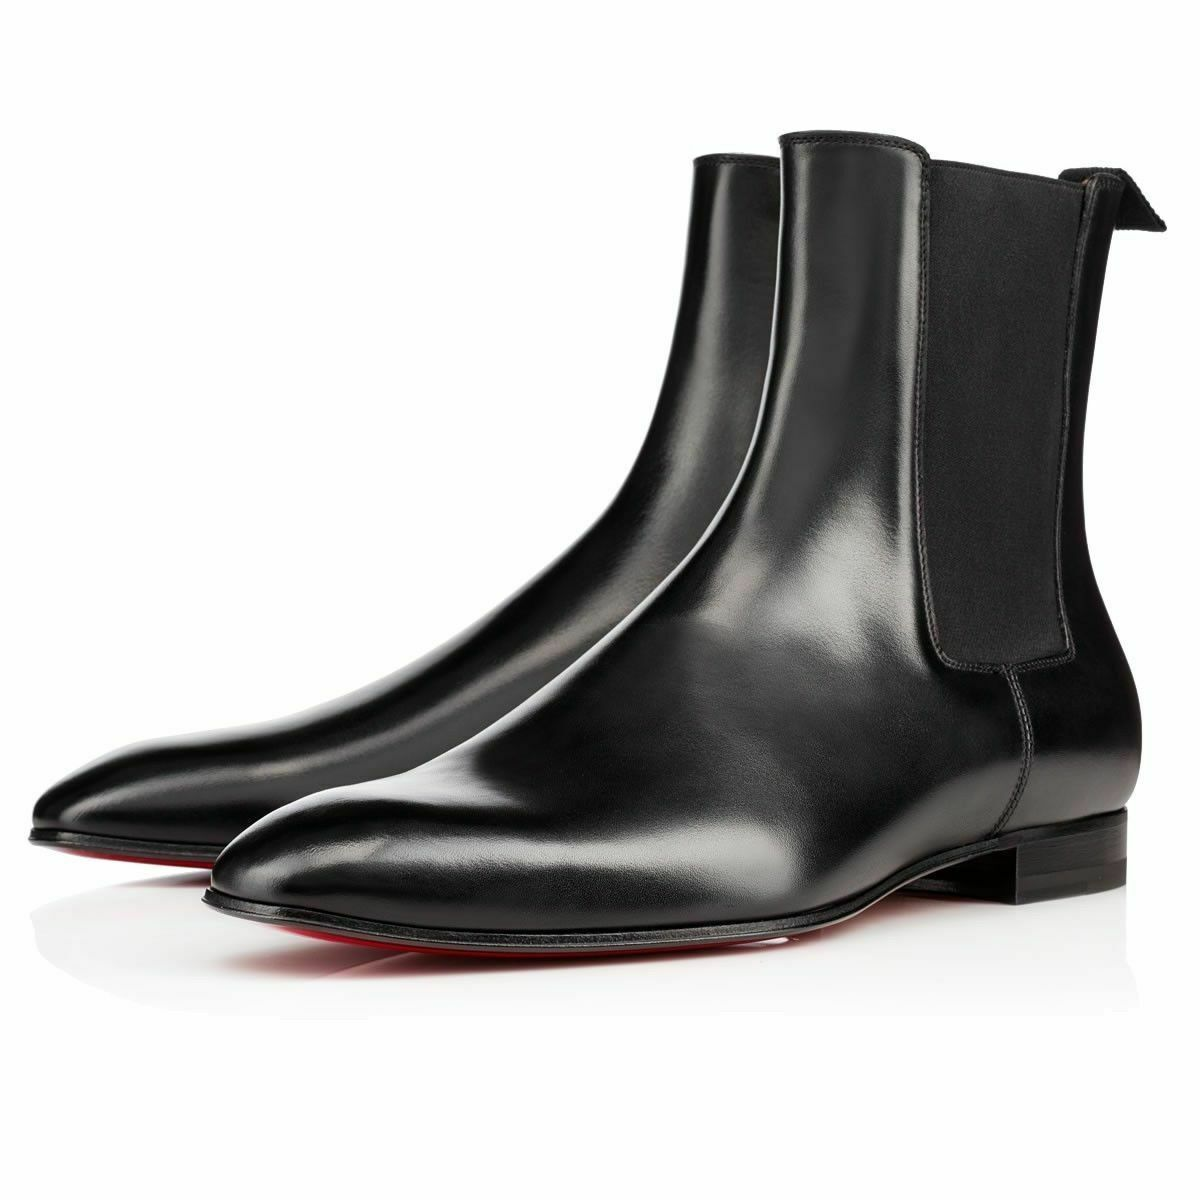 Men's Black Chelsea High Ankle Jumper Slip Ons Leather Premium Quality Boots